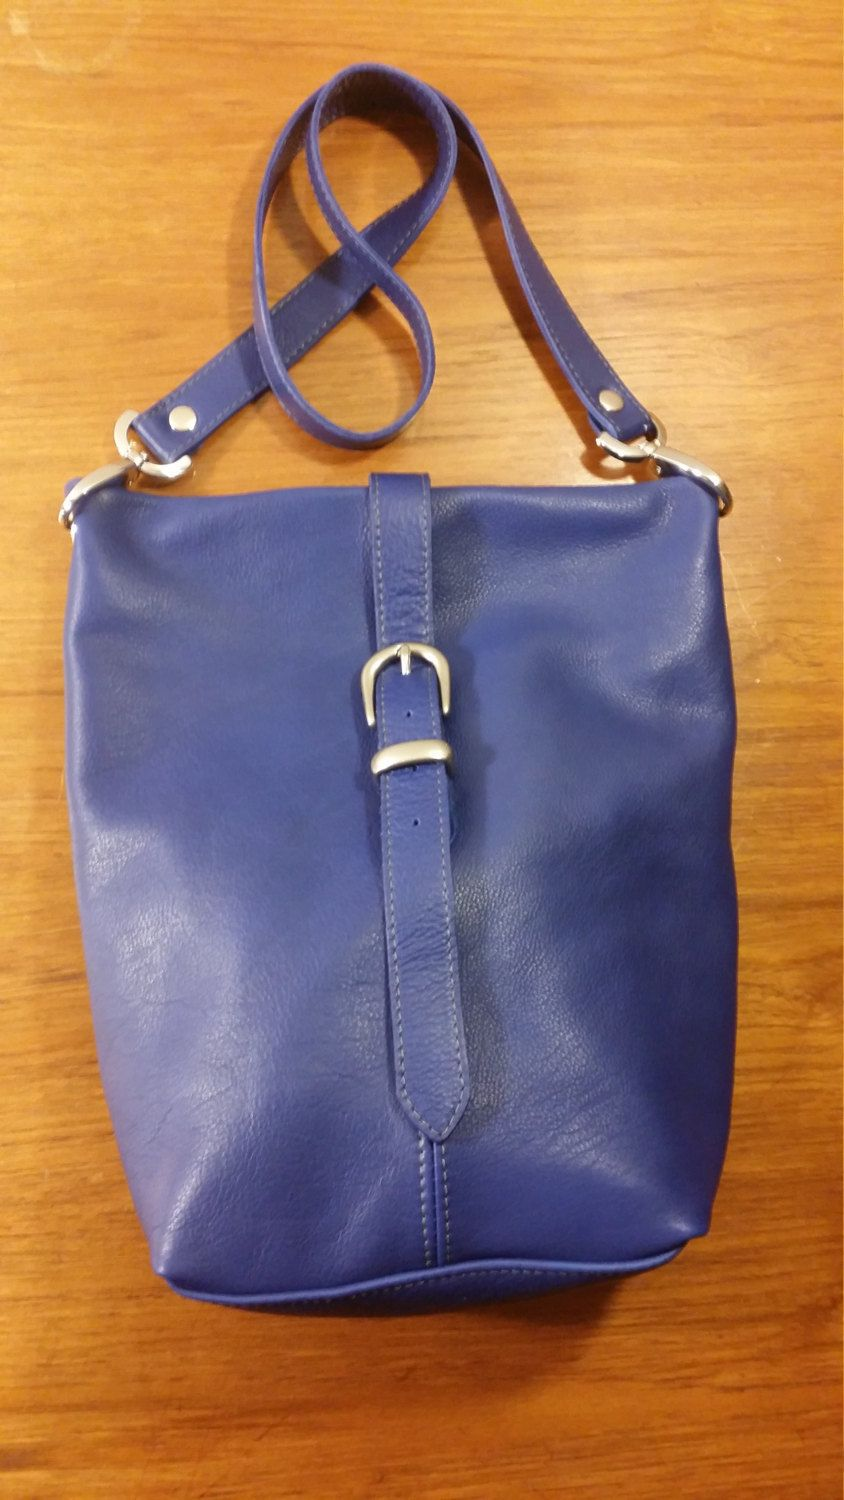 Cobalt Blue Leather Soft Luxury Minelli Crossbody Bag Shoulder Messenger with Buckled Strap Closure Handmade in USA by jewelrypieces on Etsy